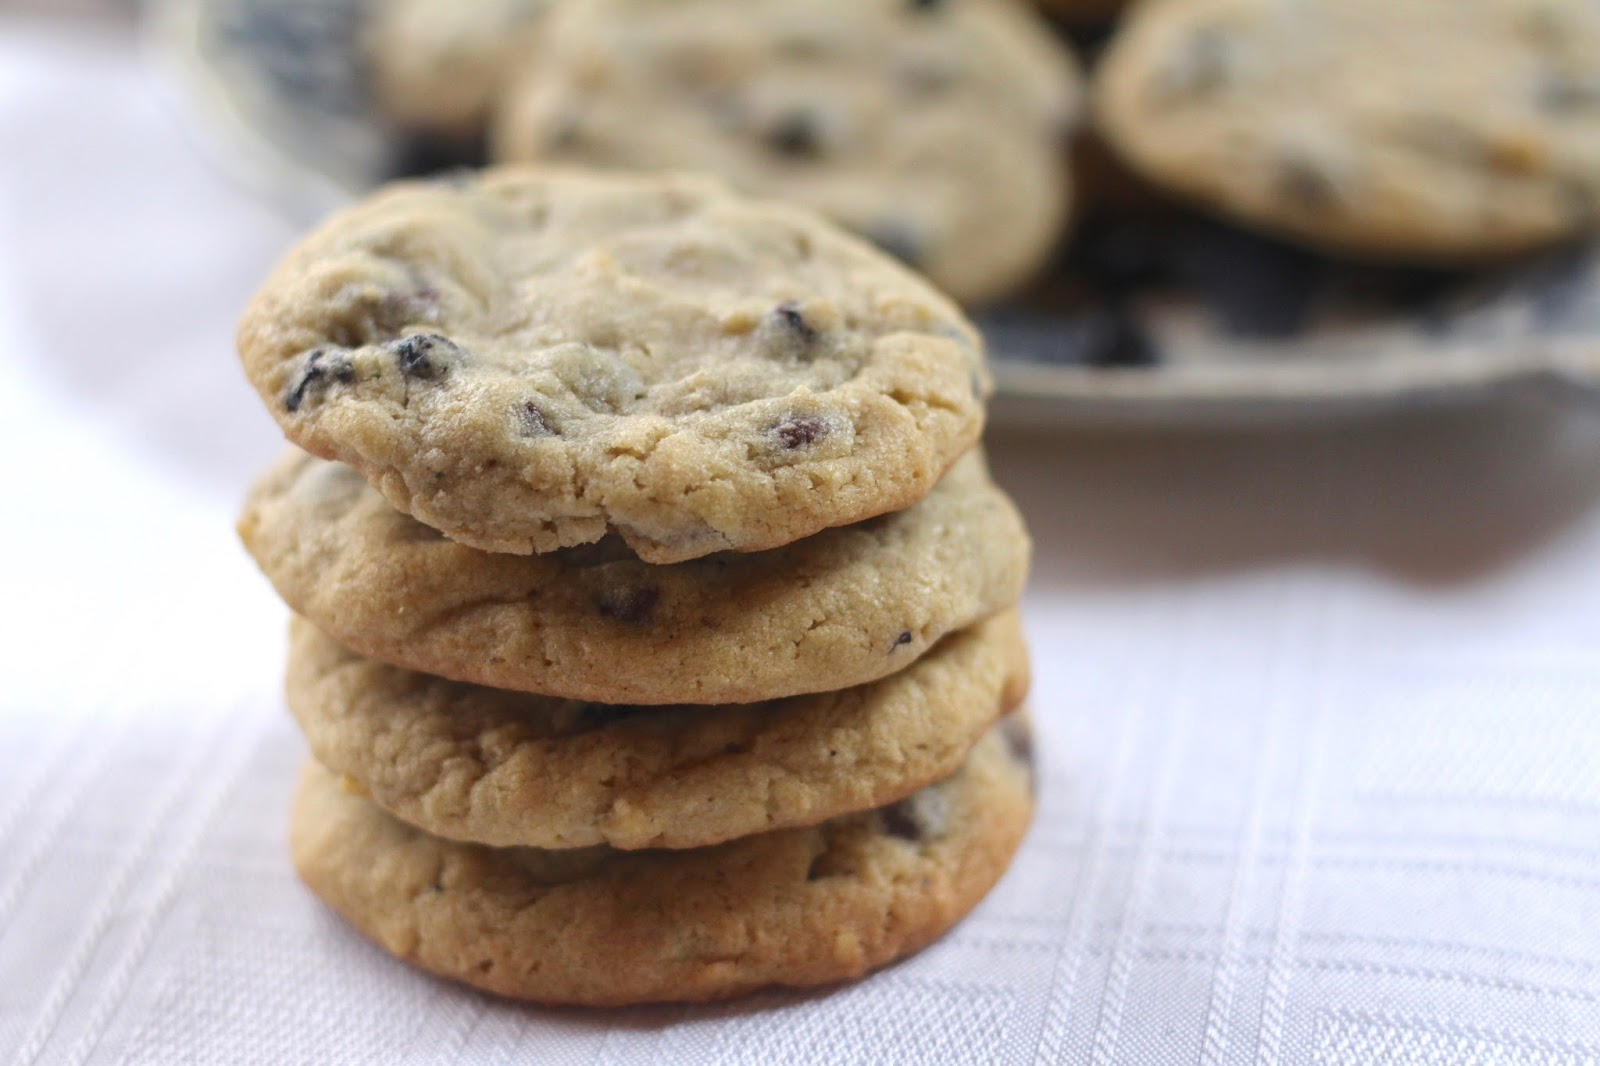 Diary of a Mad Hausfrau: Blueberry, Chocolate, Potato Chip Cookies